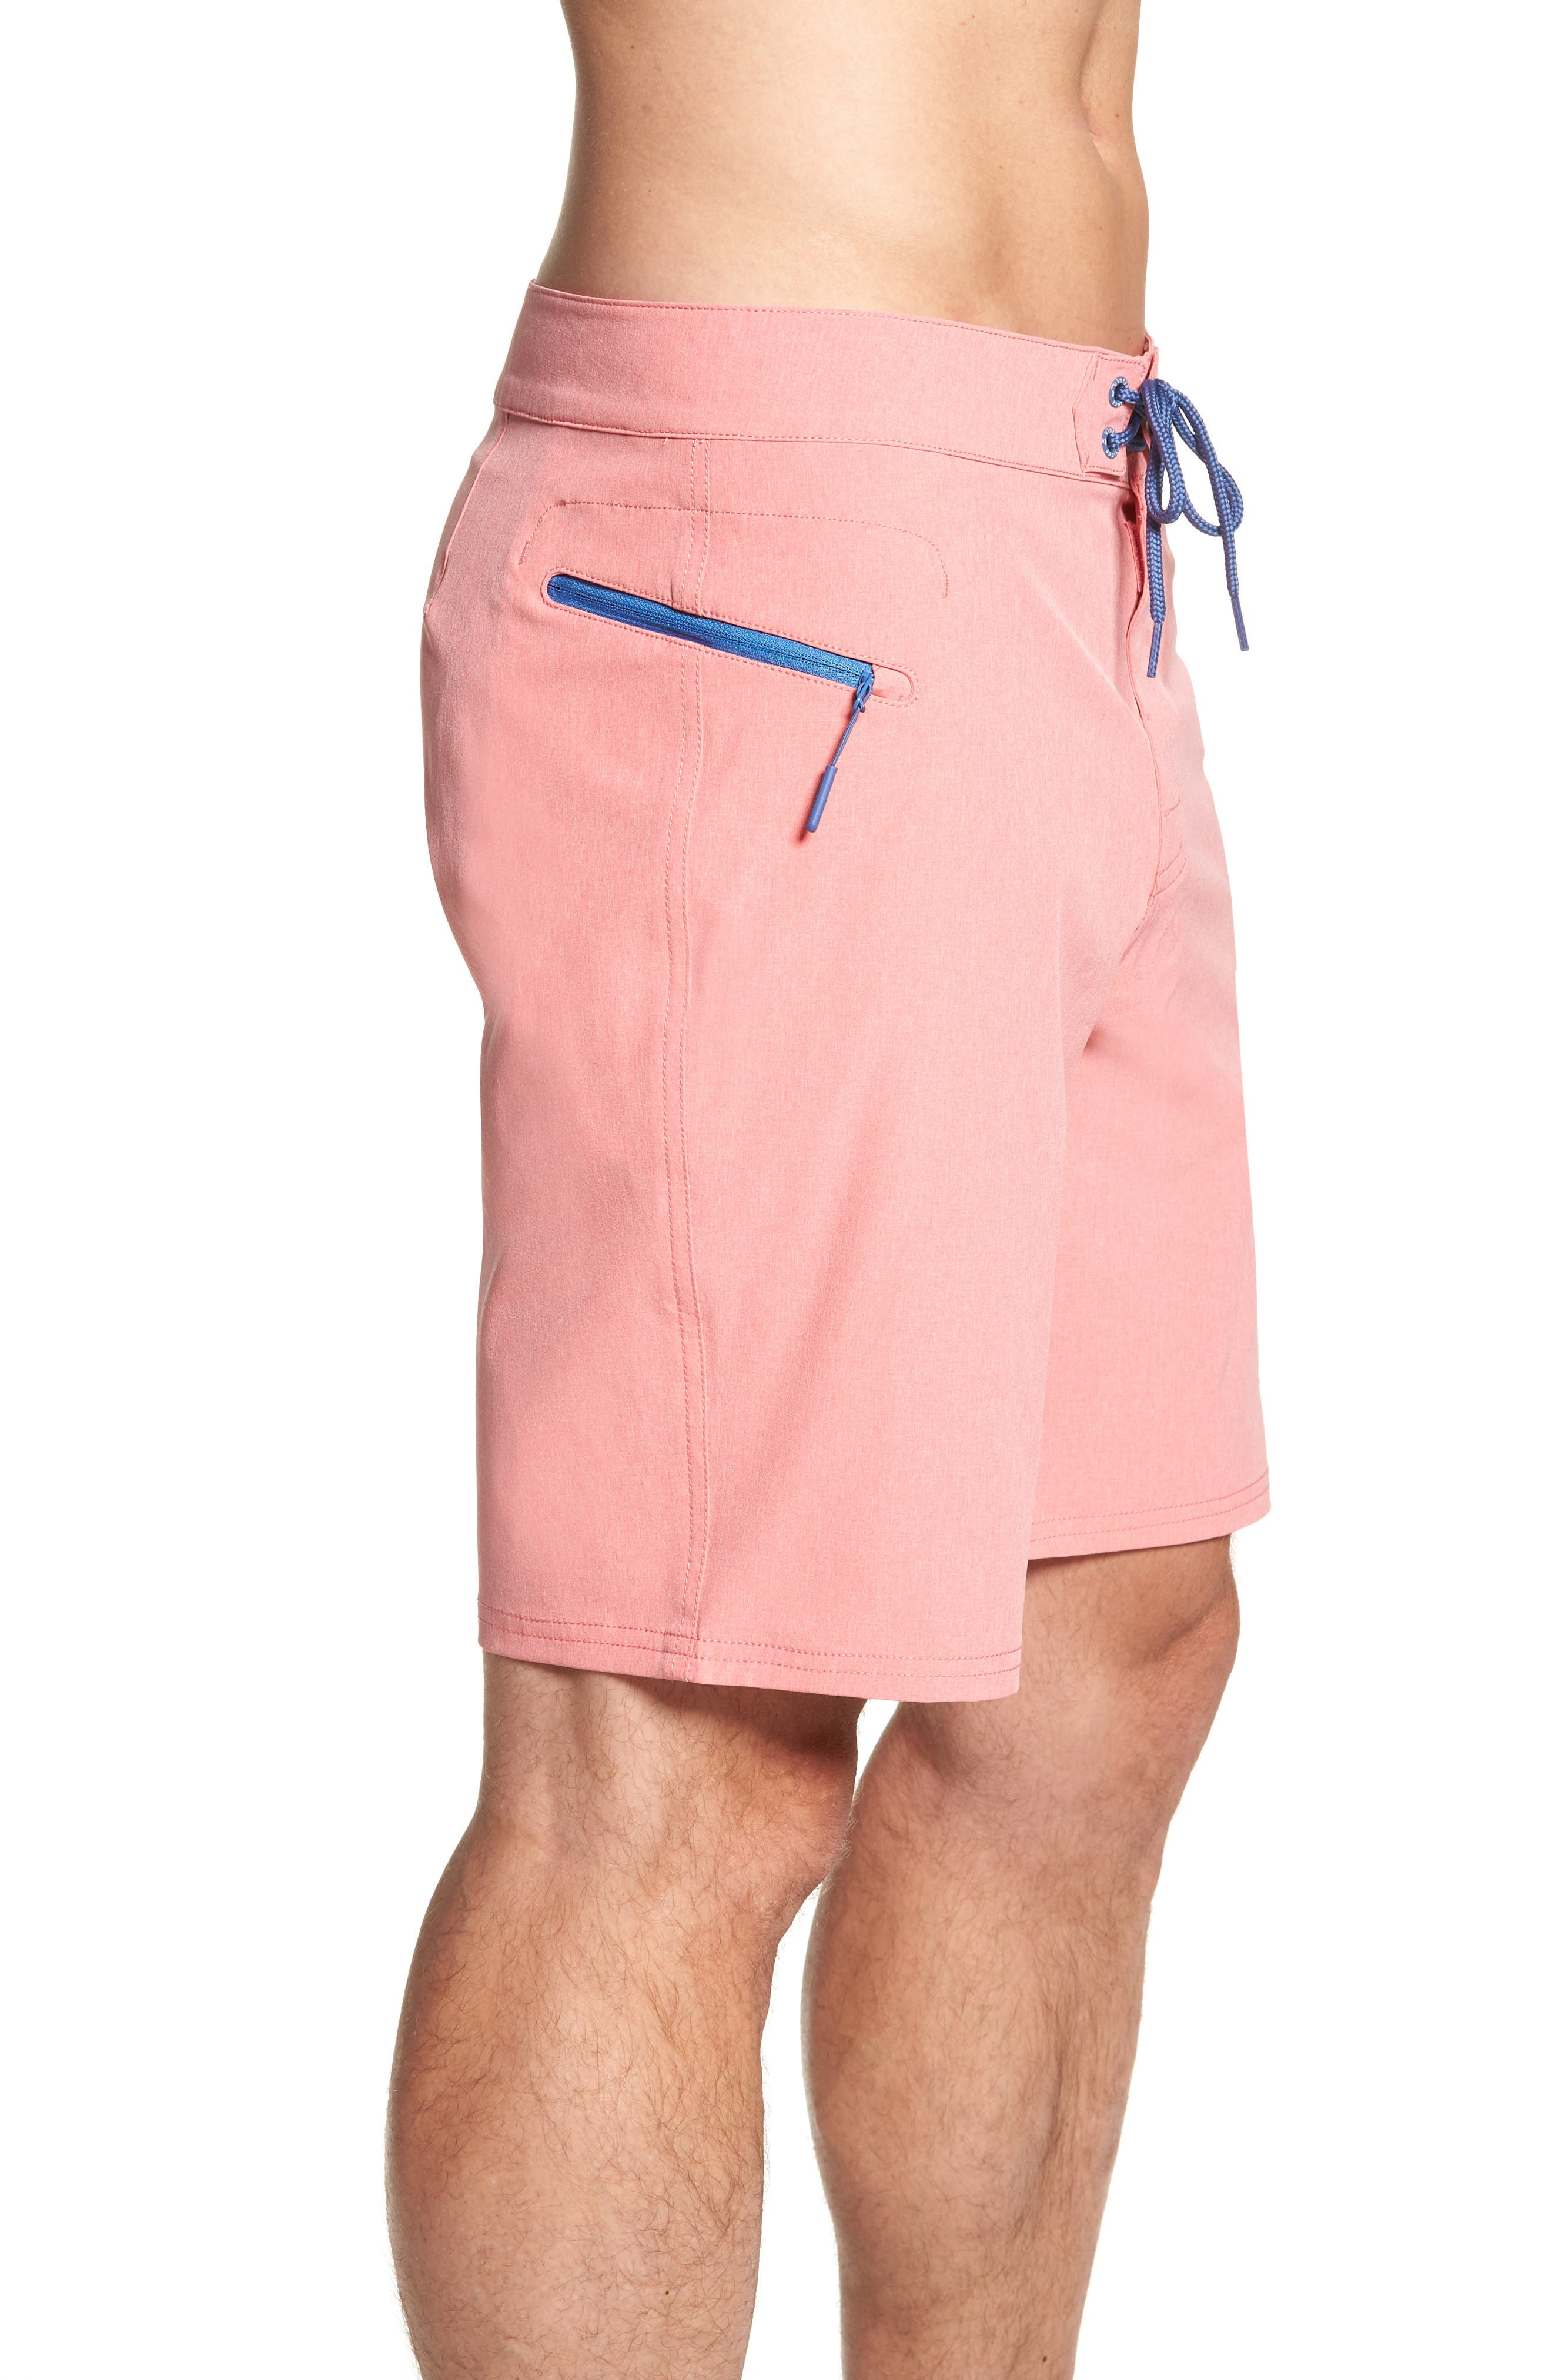 Heather Stretch Board Shorts,                             Alternate thumbnail 3, color,                             LOBSTER REEF